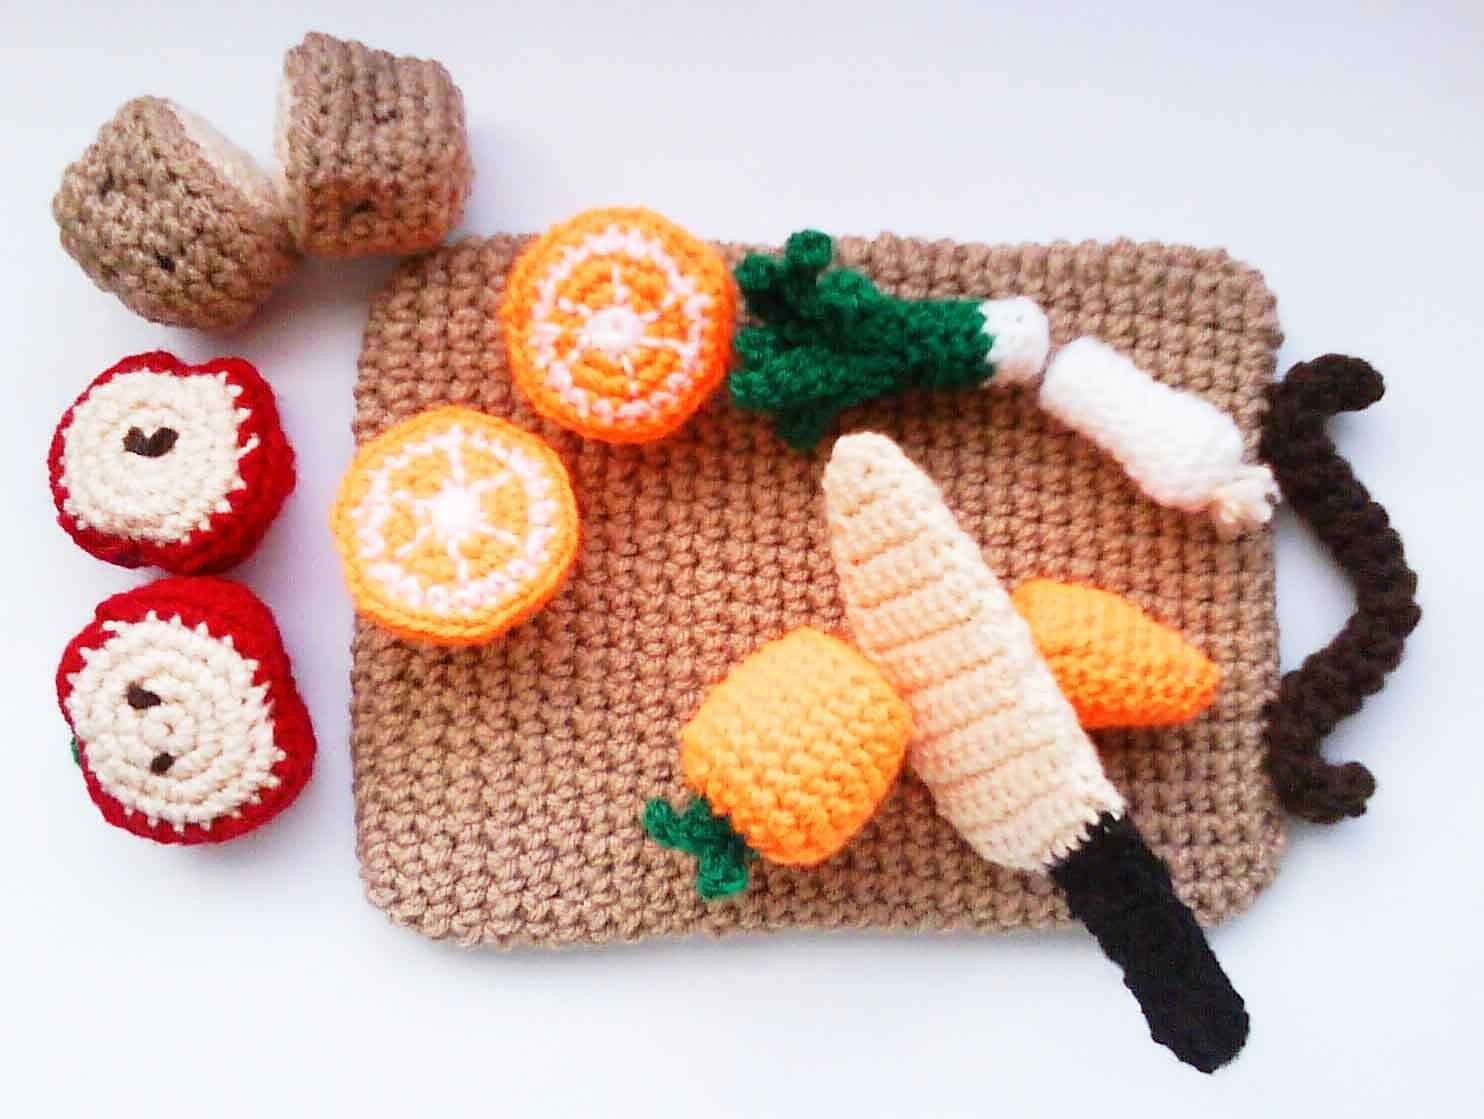 Amigurumi Vegetable Patterns : Turnip crochet pattern pdf crochet turnip pattern amigurumi